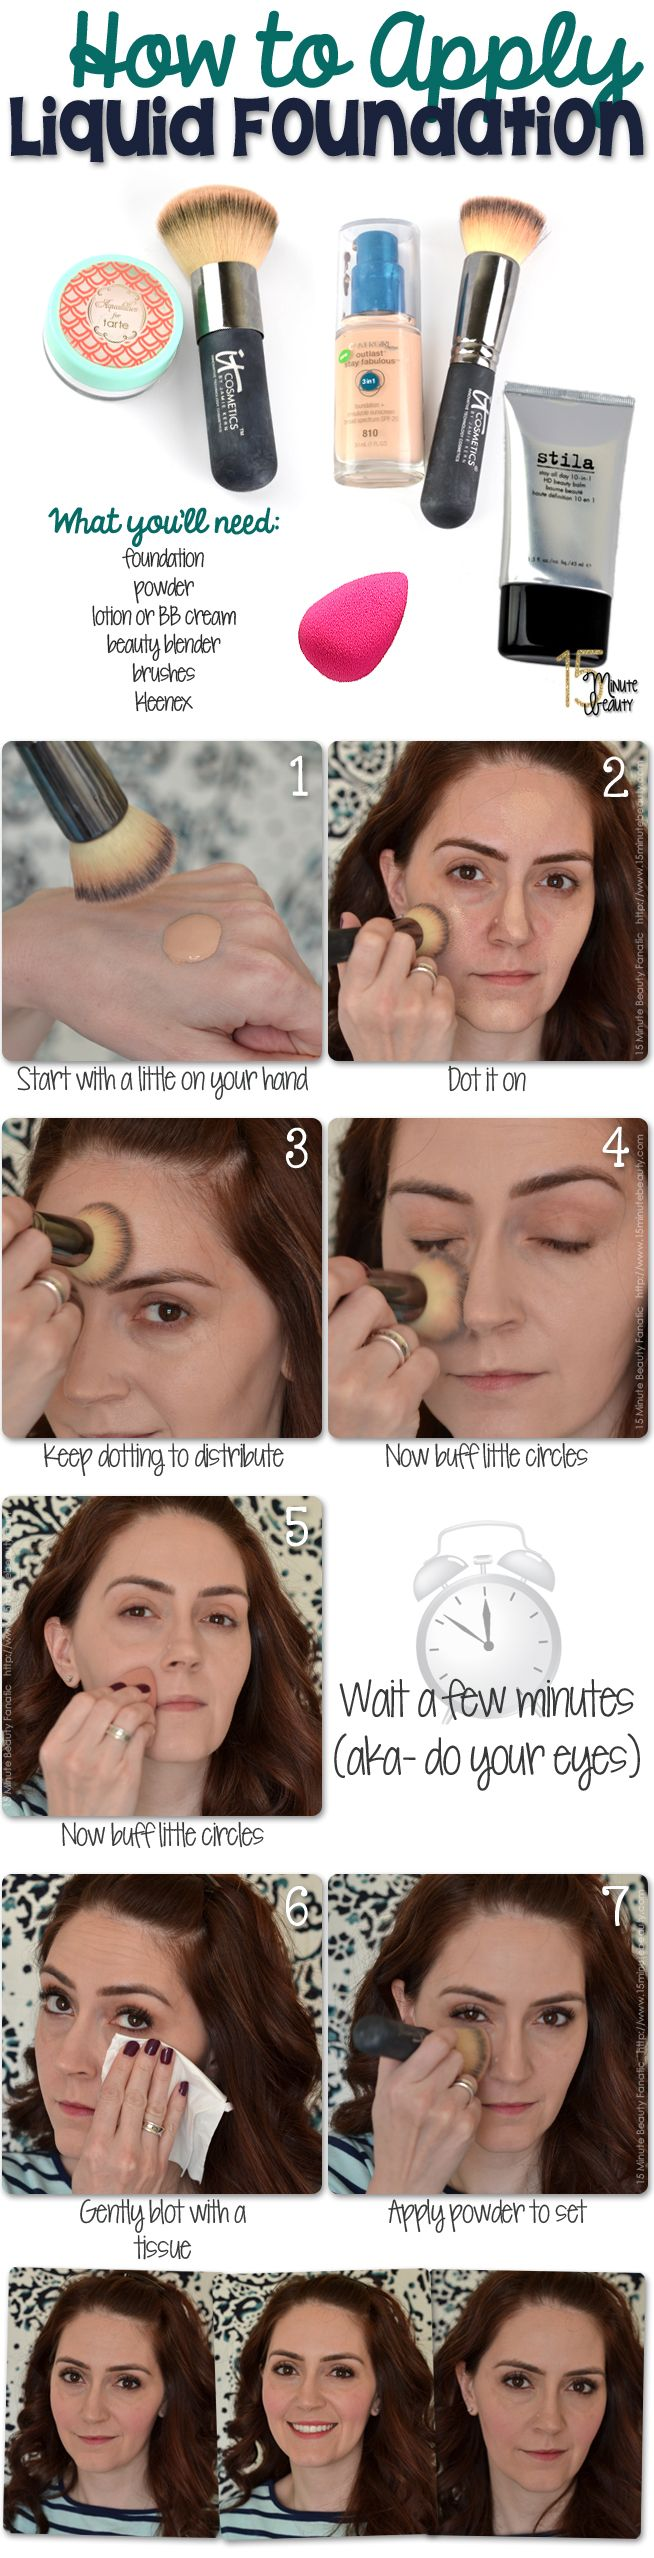 How to Apply Liquid Foundation and get a Flawless, Airbrushed Finish!